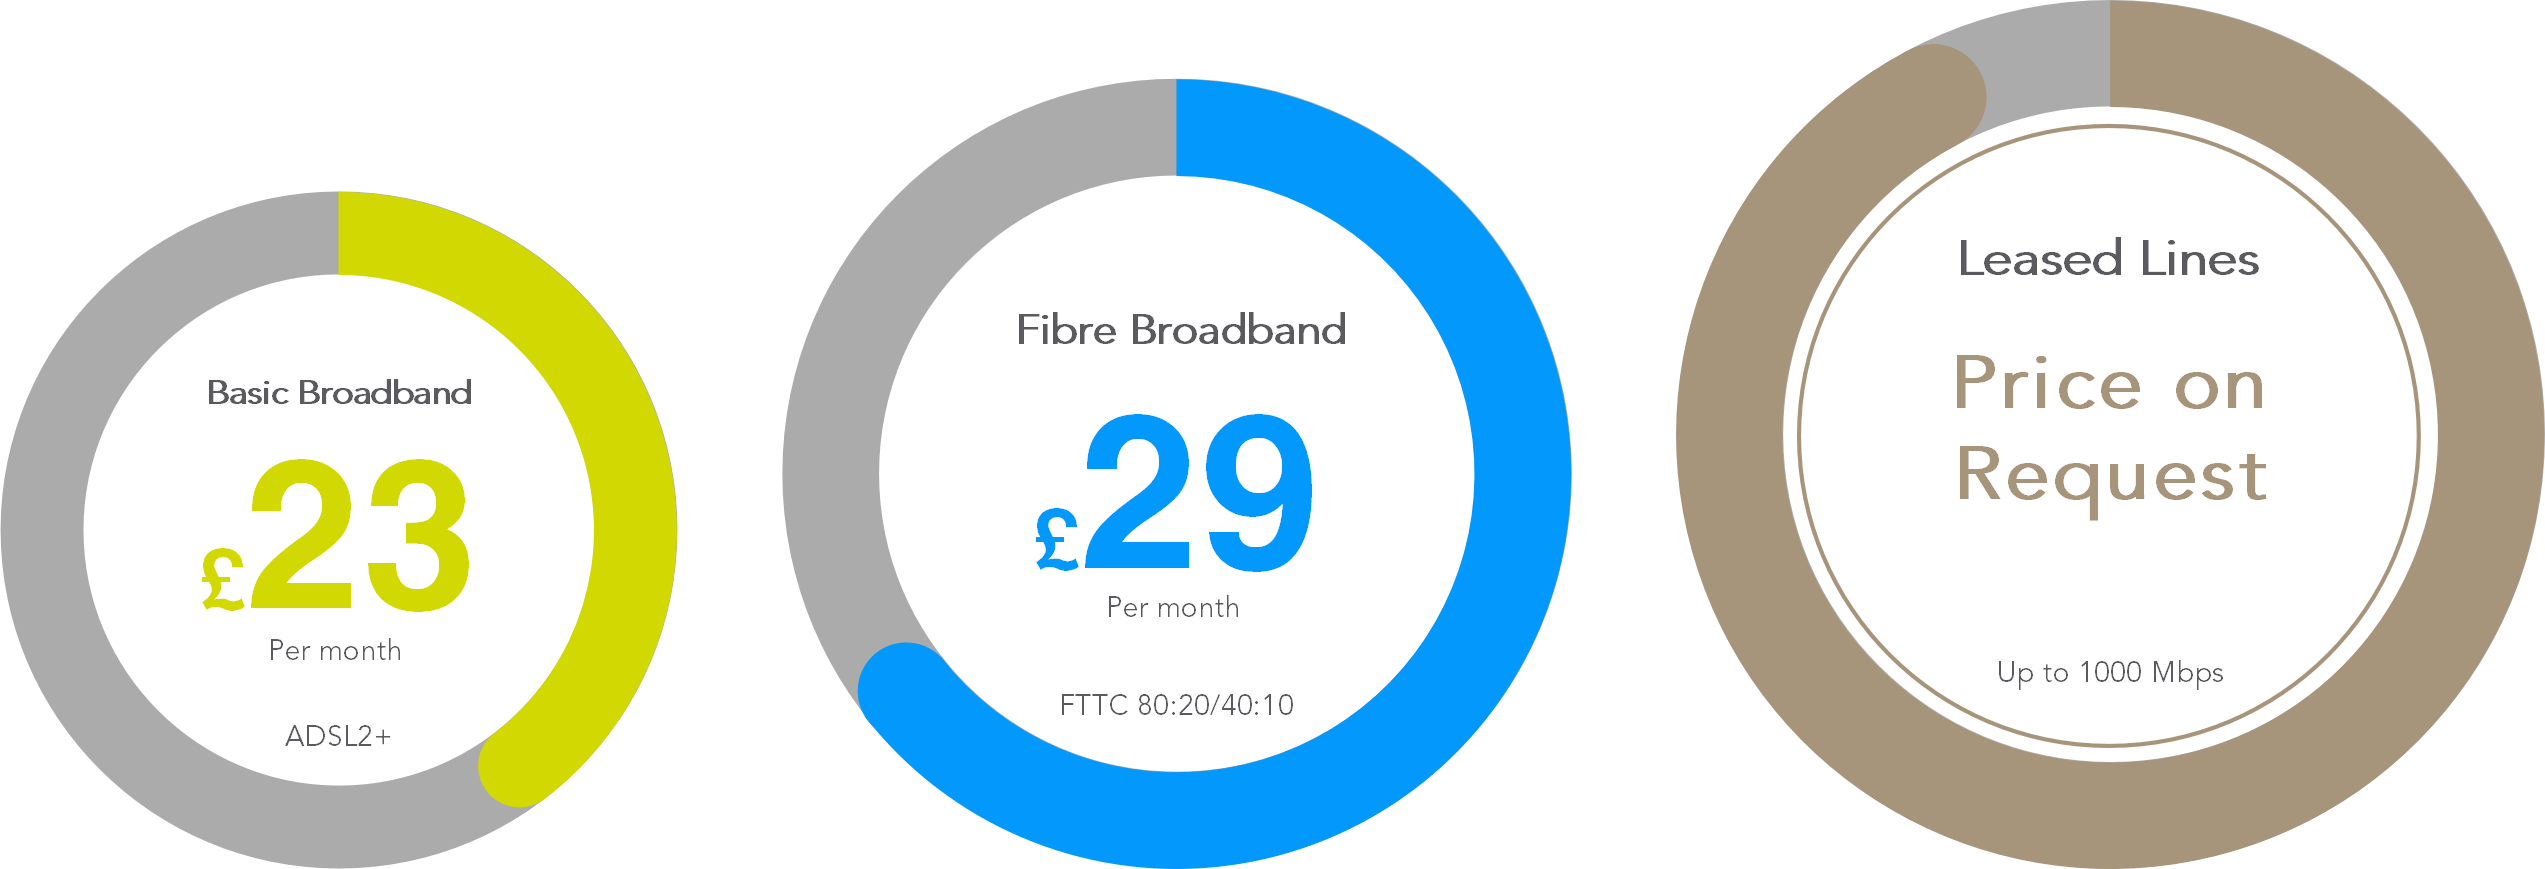 broadband options